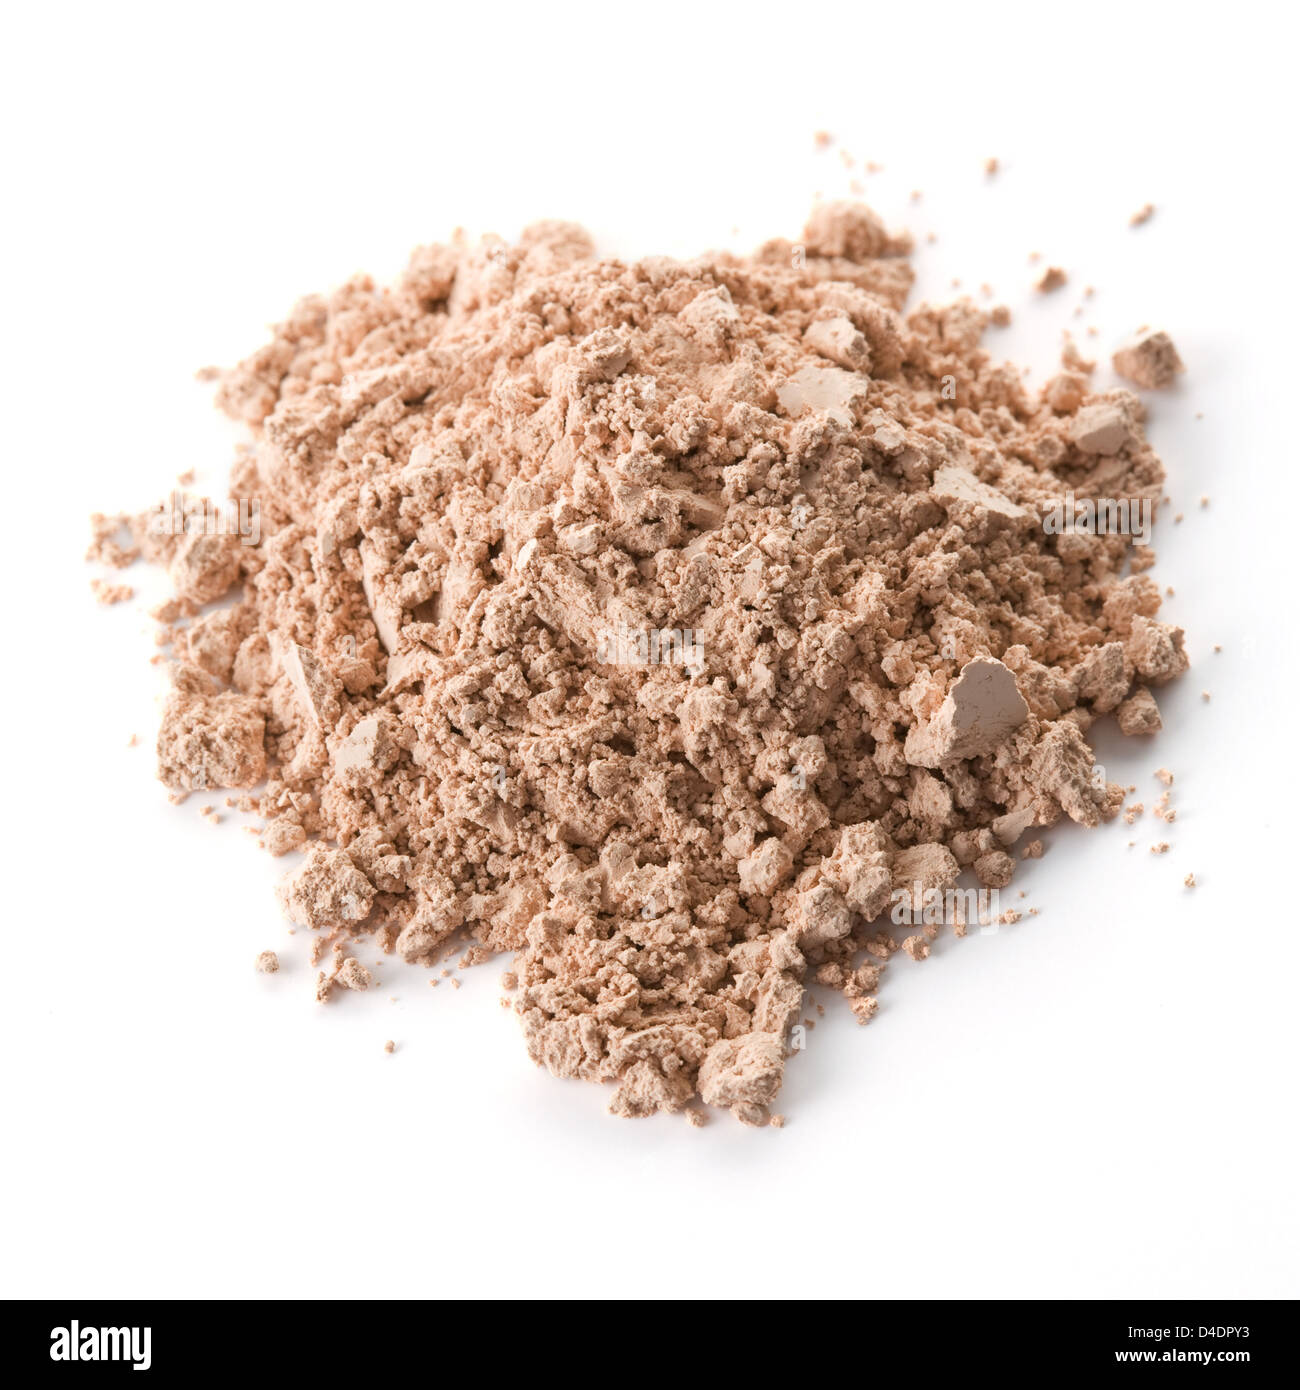 Cosmetic powder isolated on white background - Stock Image